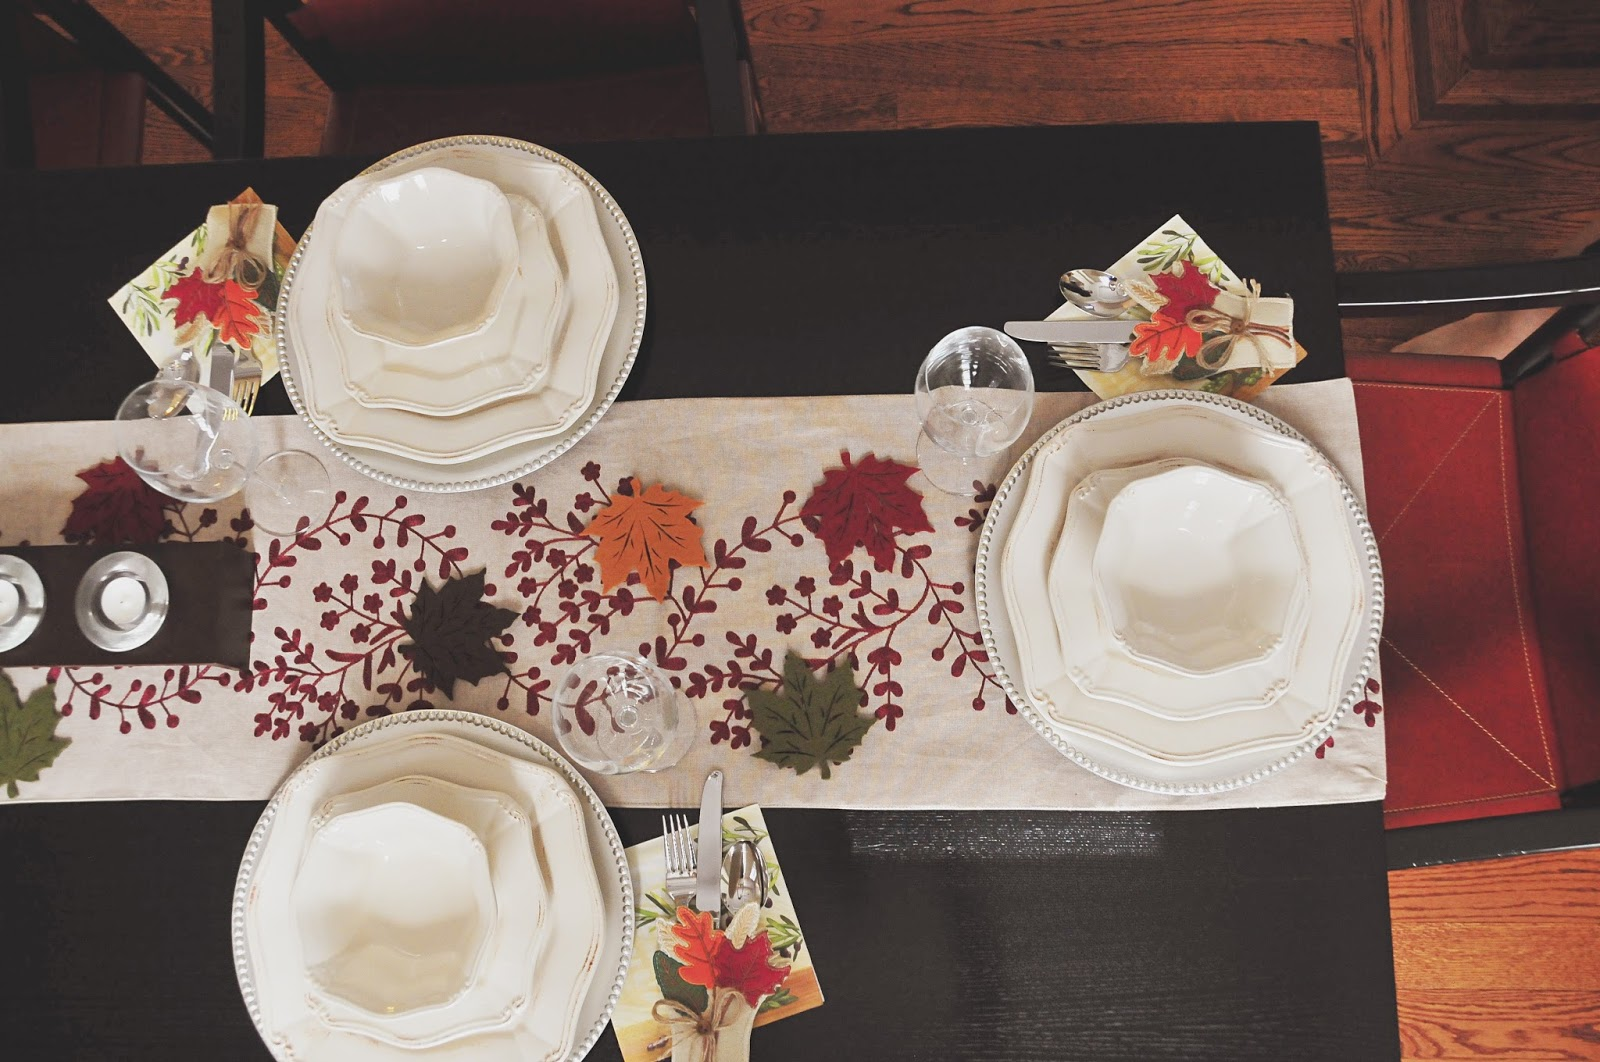 thanksgiving table setting decor ideas pinterest leaves red